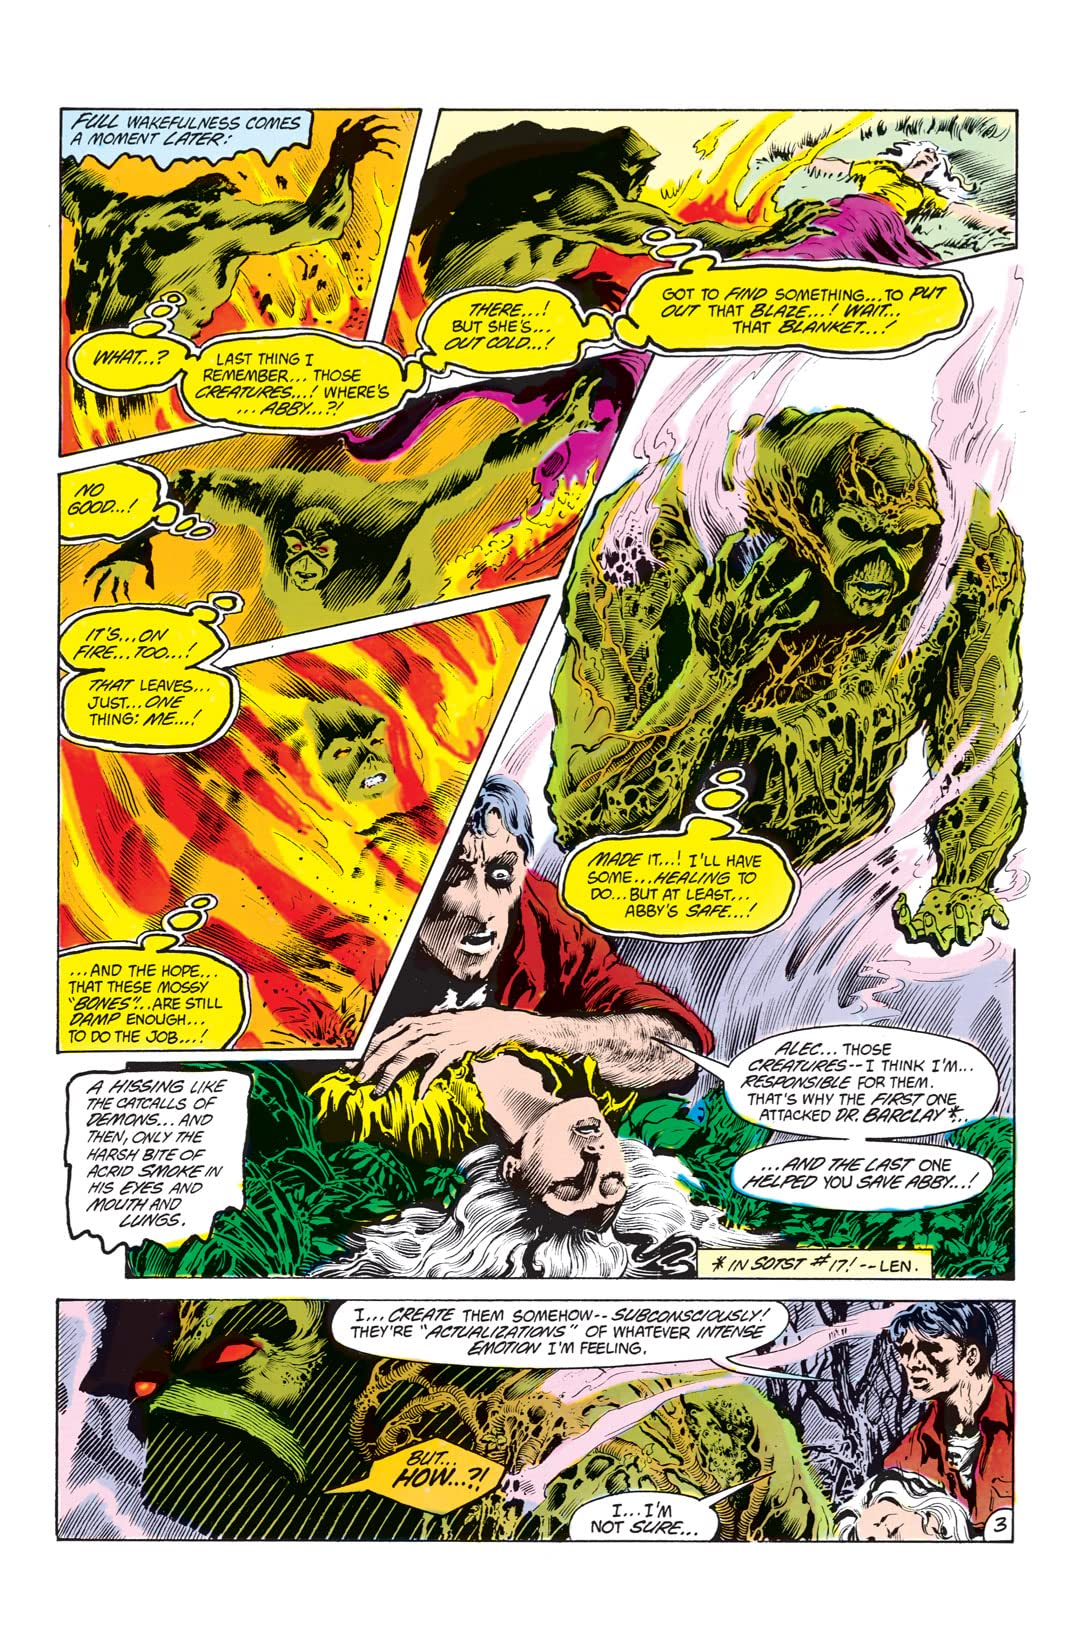 The Saga of the Swamp Thing (1982-1996) #19